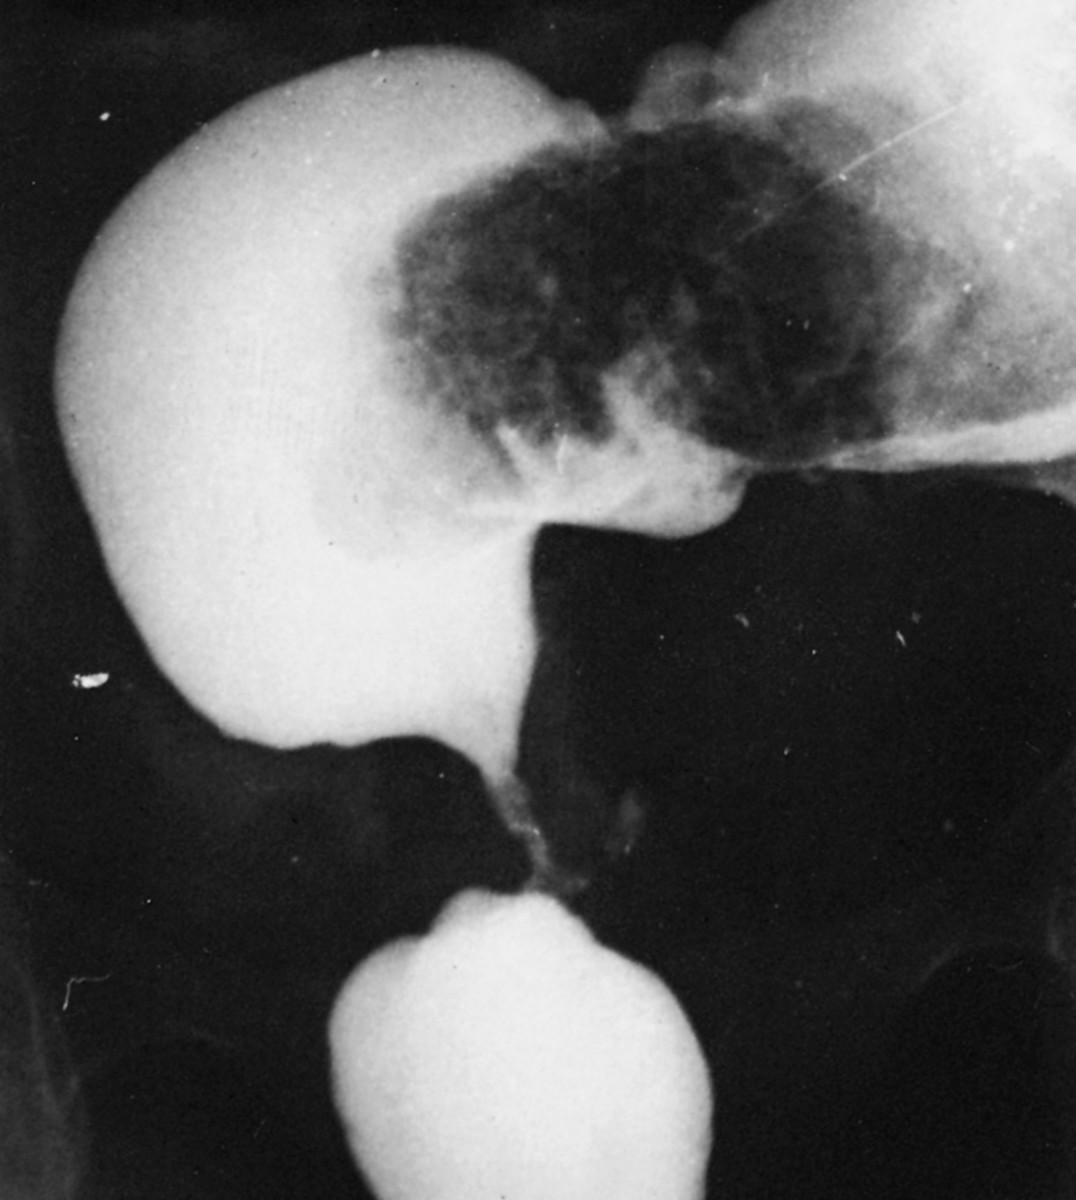 Stricture of the large bowel